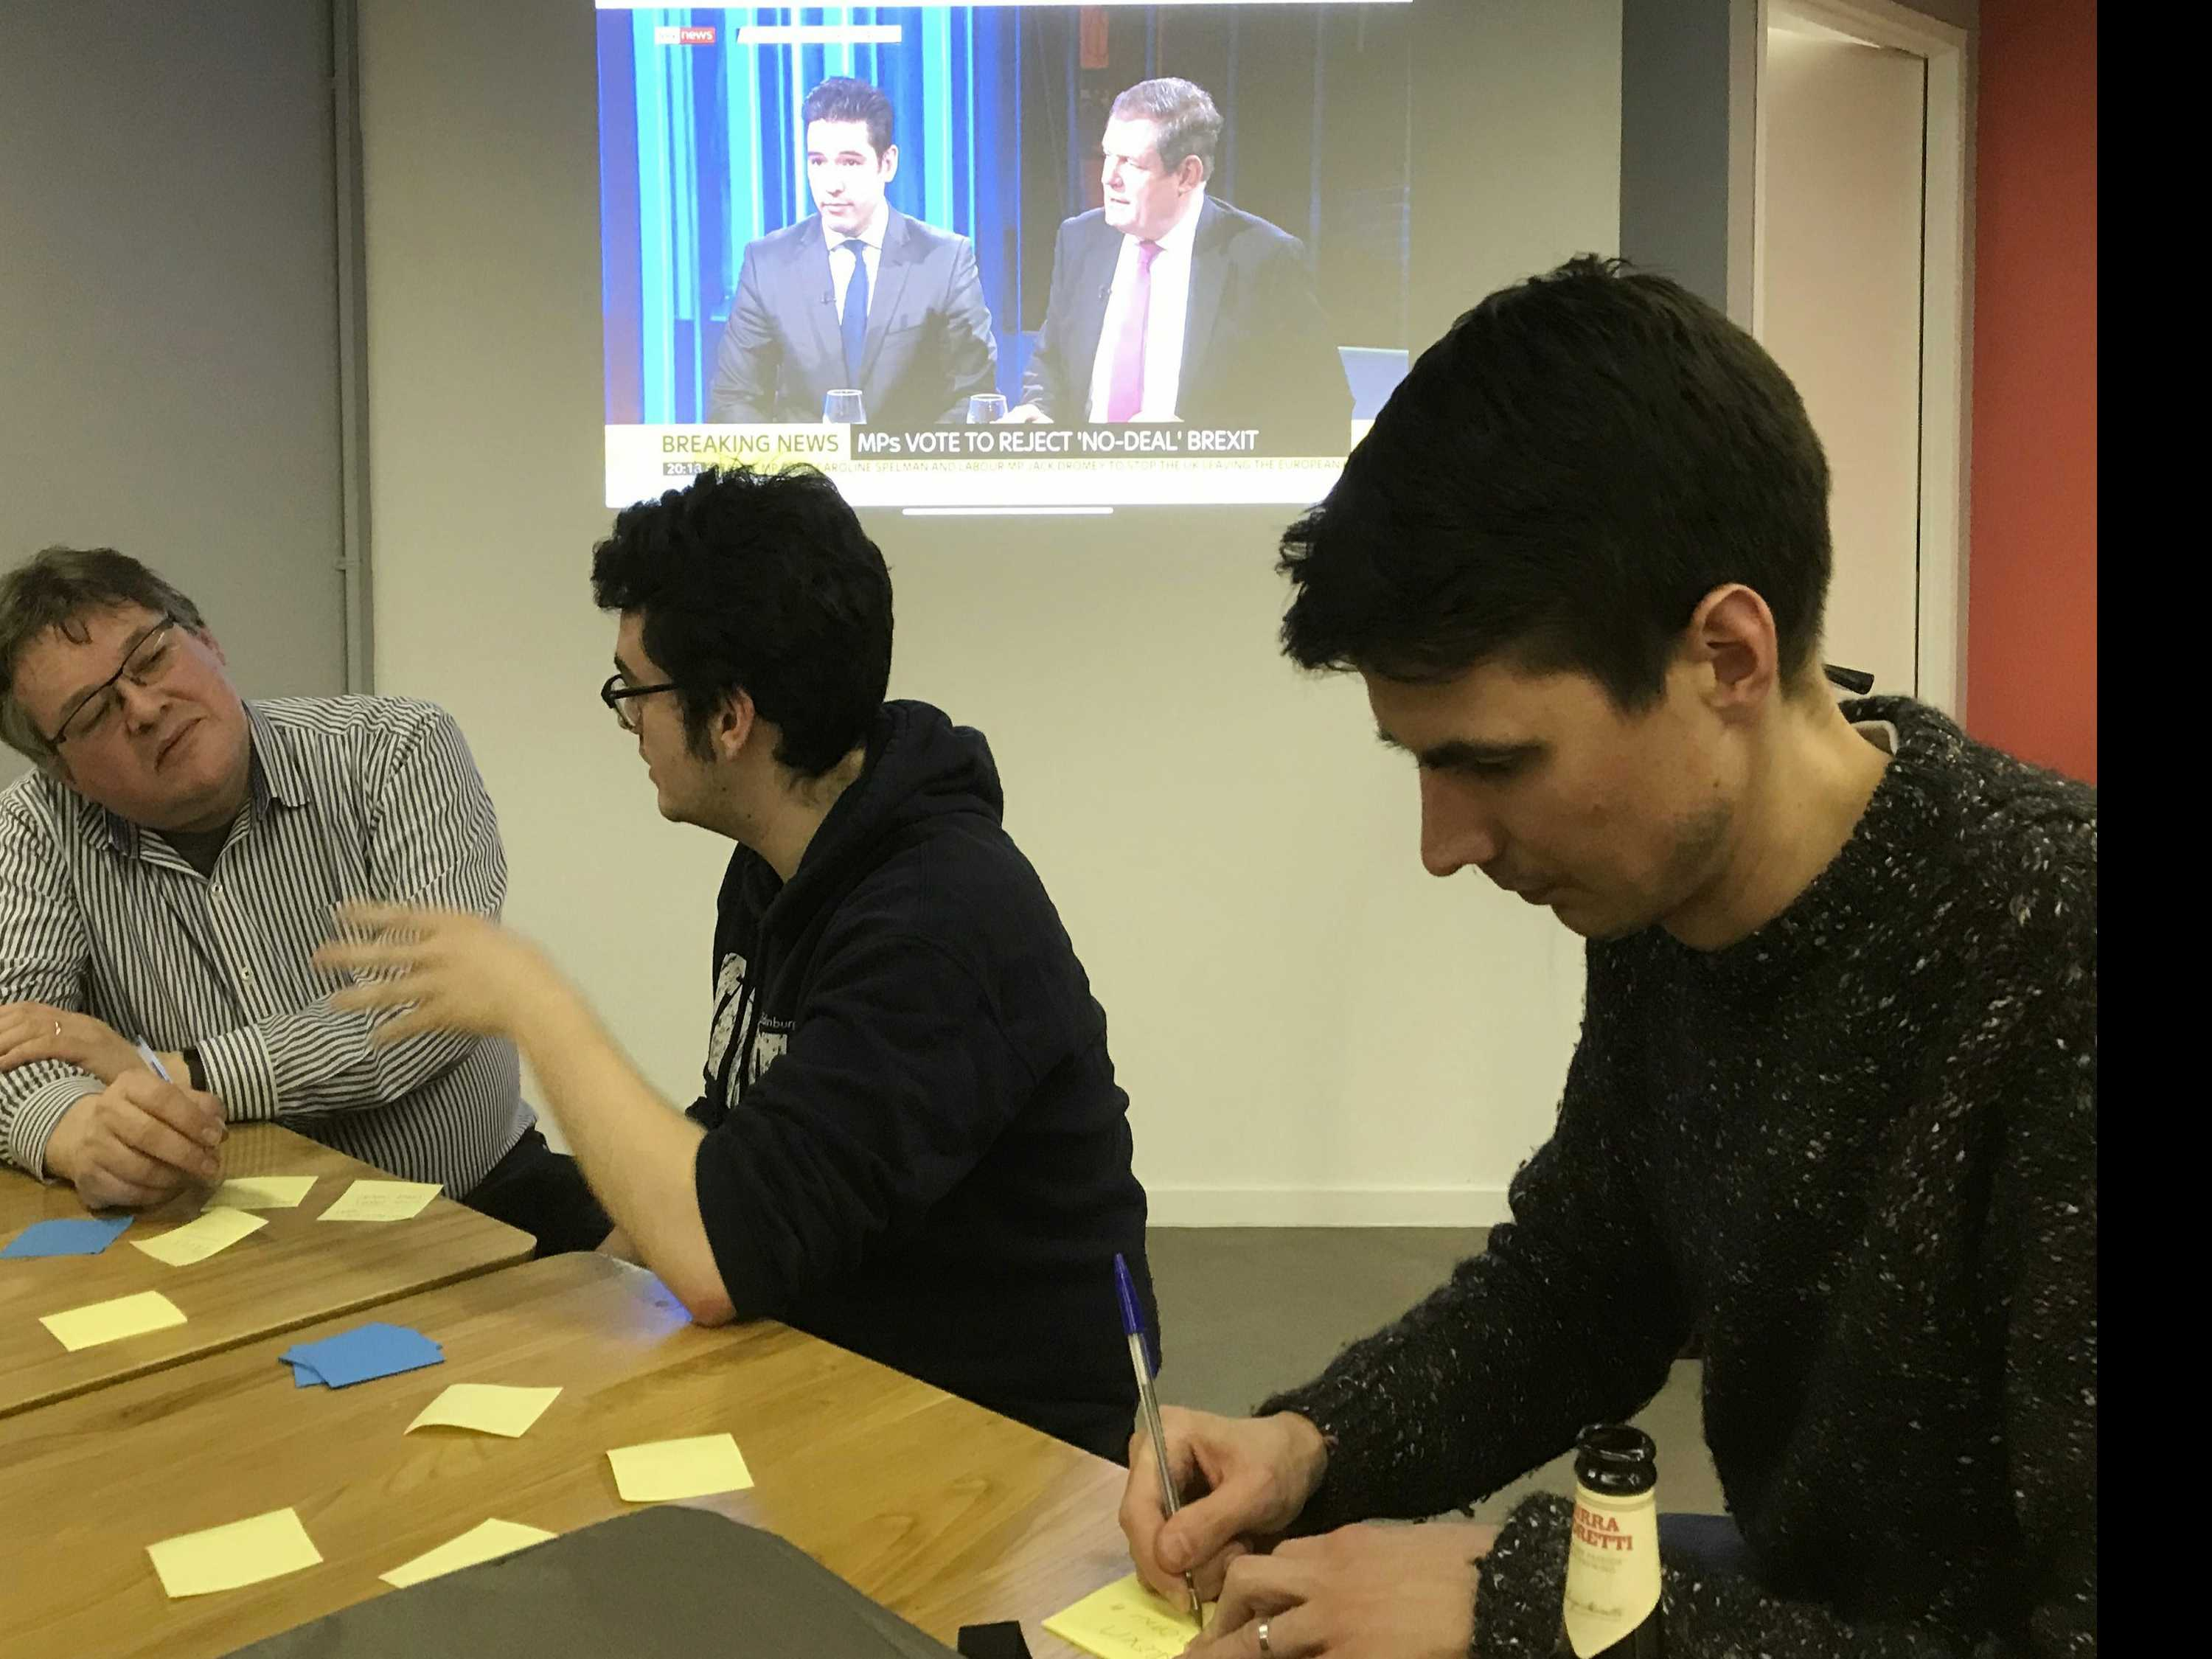 Grassroots Tech Group Takes Startup Approach to Fight Brexit